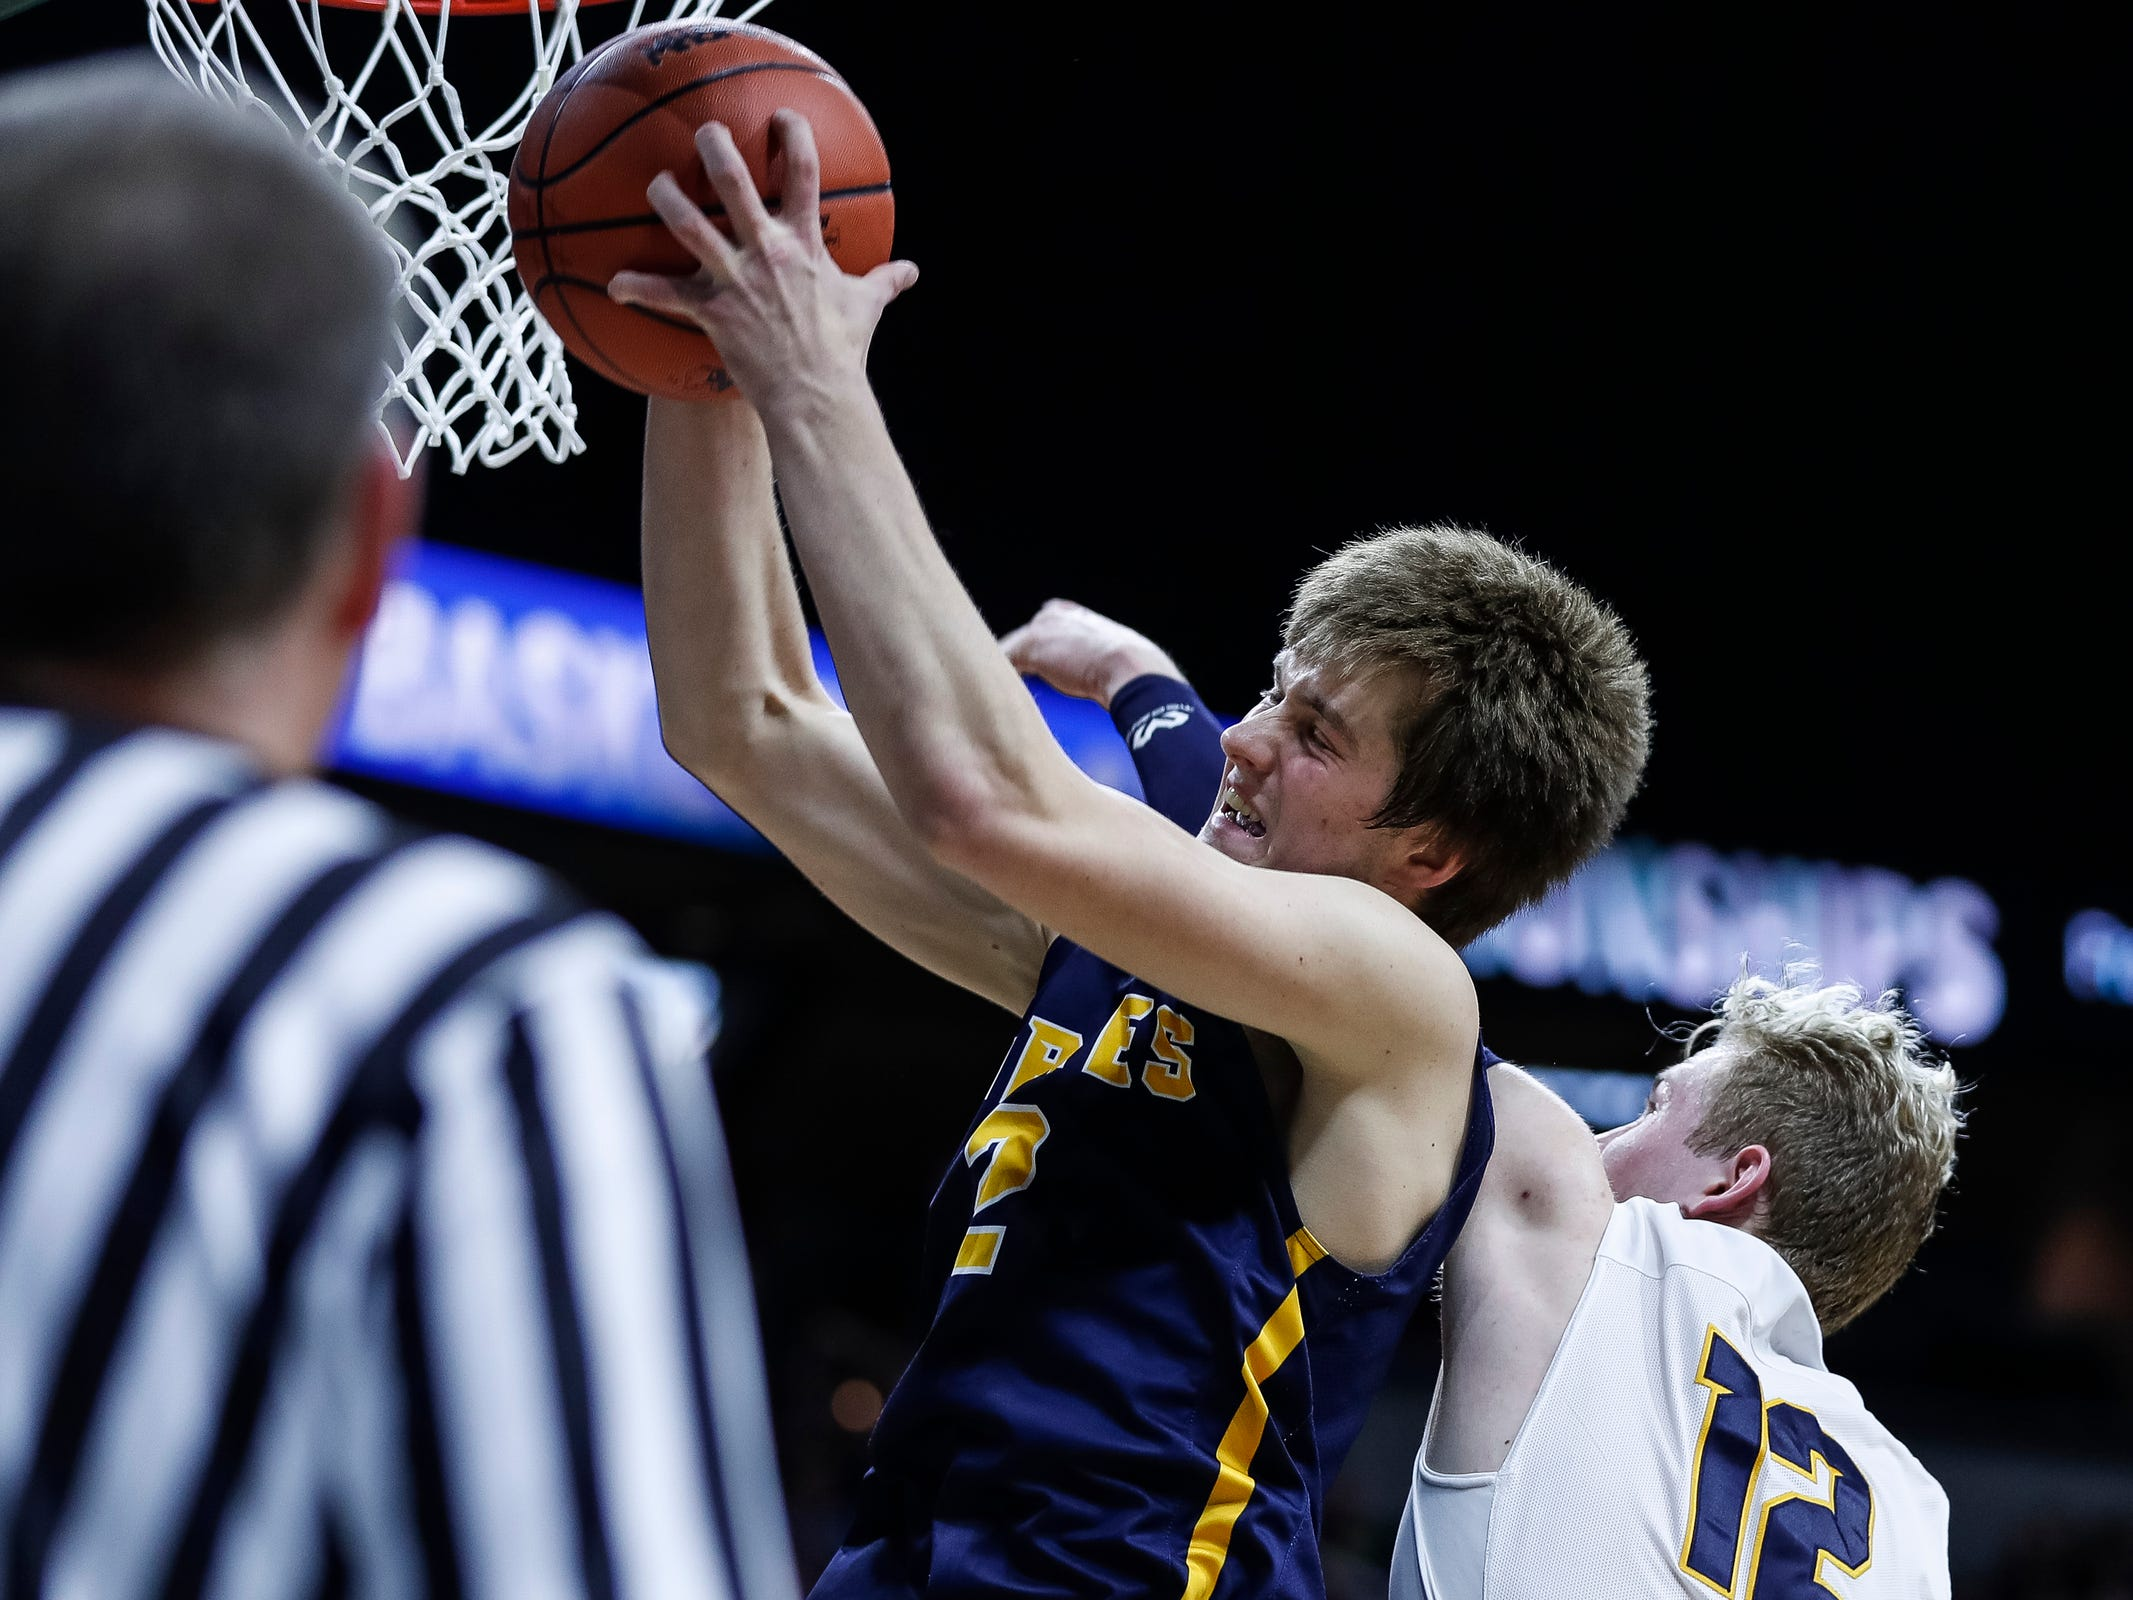 Pewamo-Westphalia's Nathan Wirth (2) battles for a rebound against Erie-Mason's Willie Werner (12) during the second half of MHSAA Division 3 semifinal at the Breslin Center in East Lansing, Thursday, March 14, 2019.